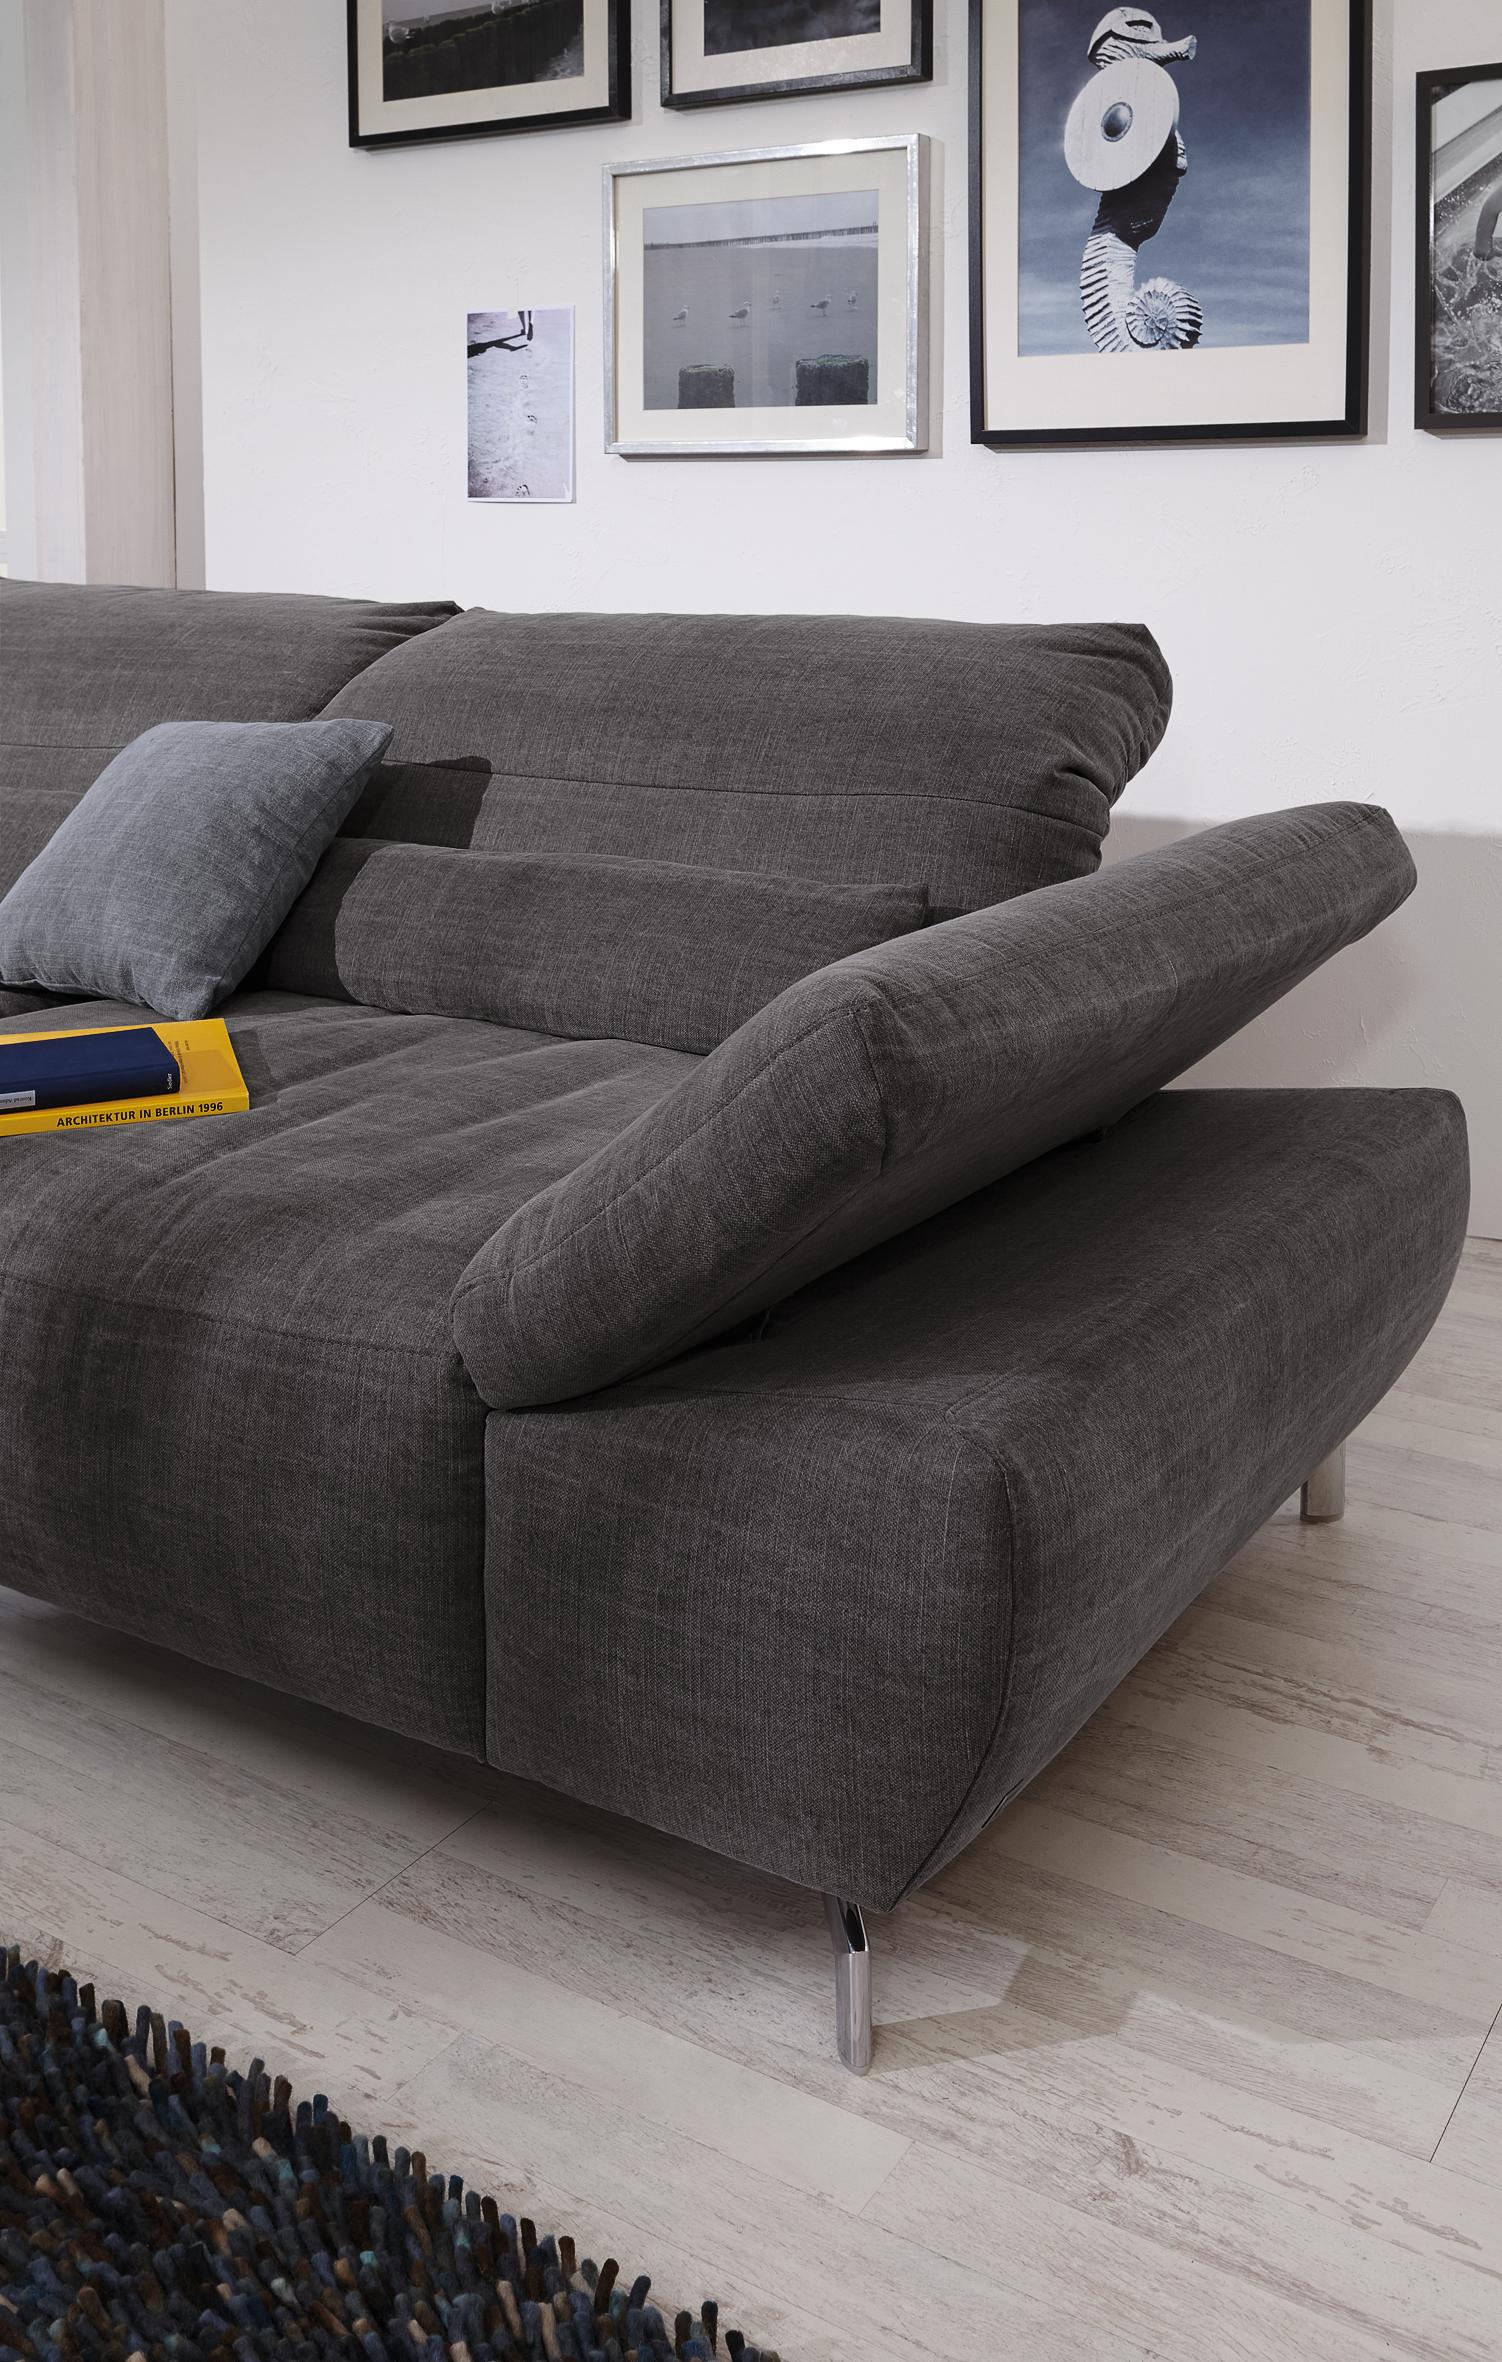 sofa rundecke cool rundecke ibis with sofa rundecke. Black Bedroom Furniture Sets. Home Design Ideas